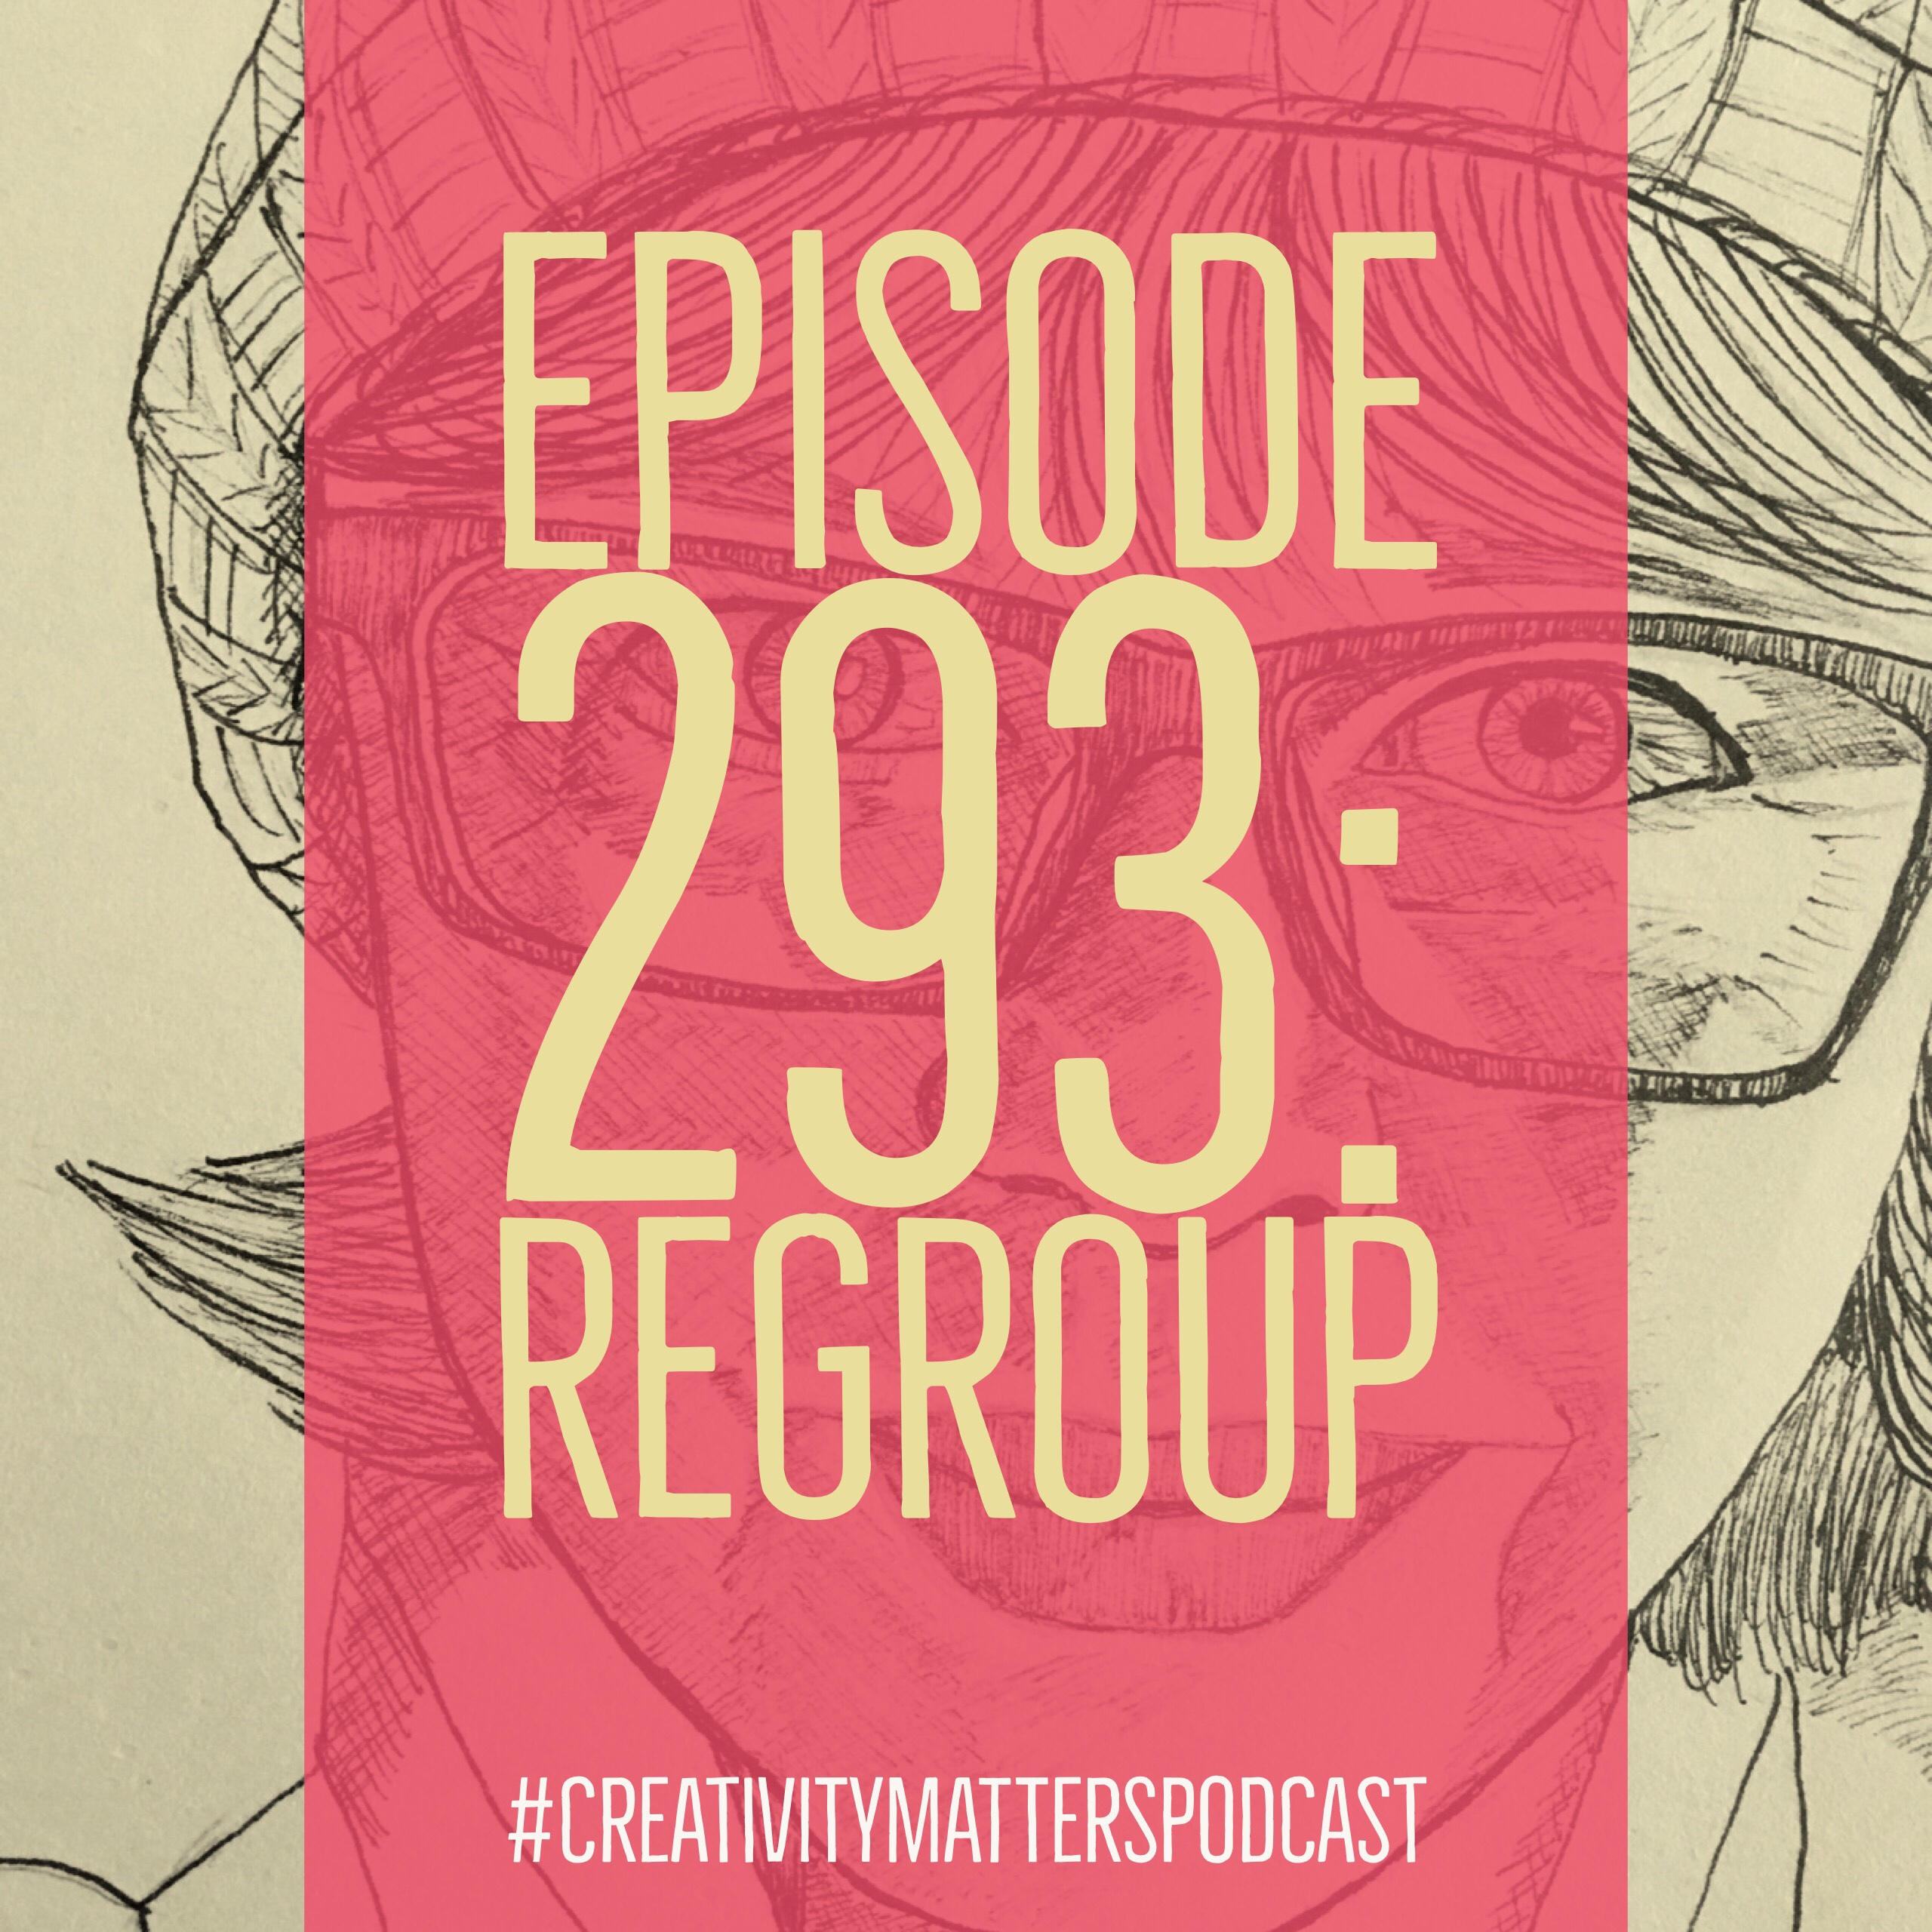 Episode 293: Regroup